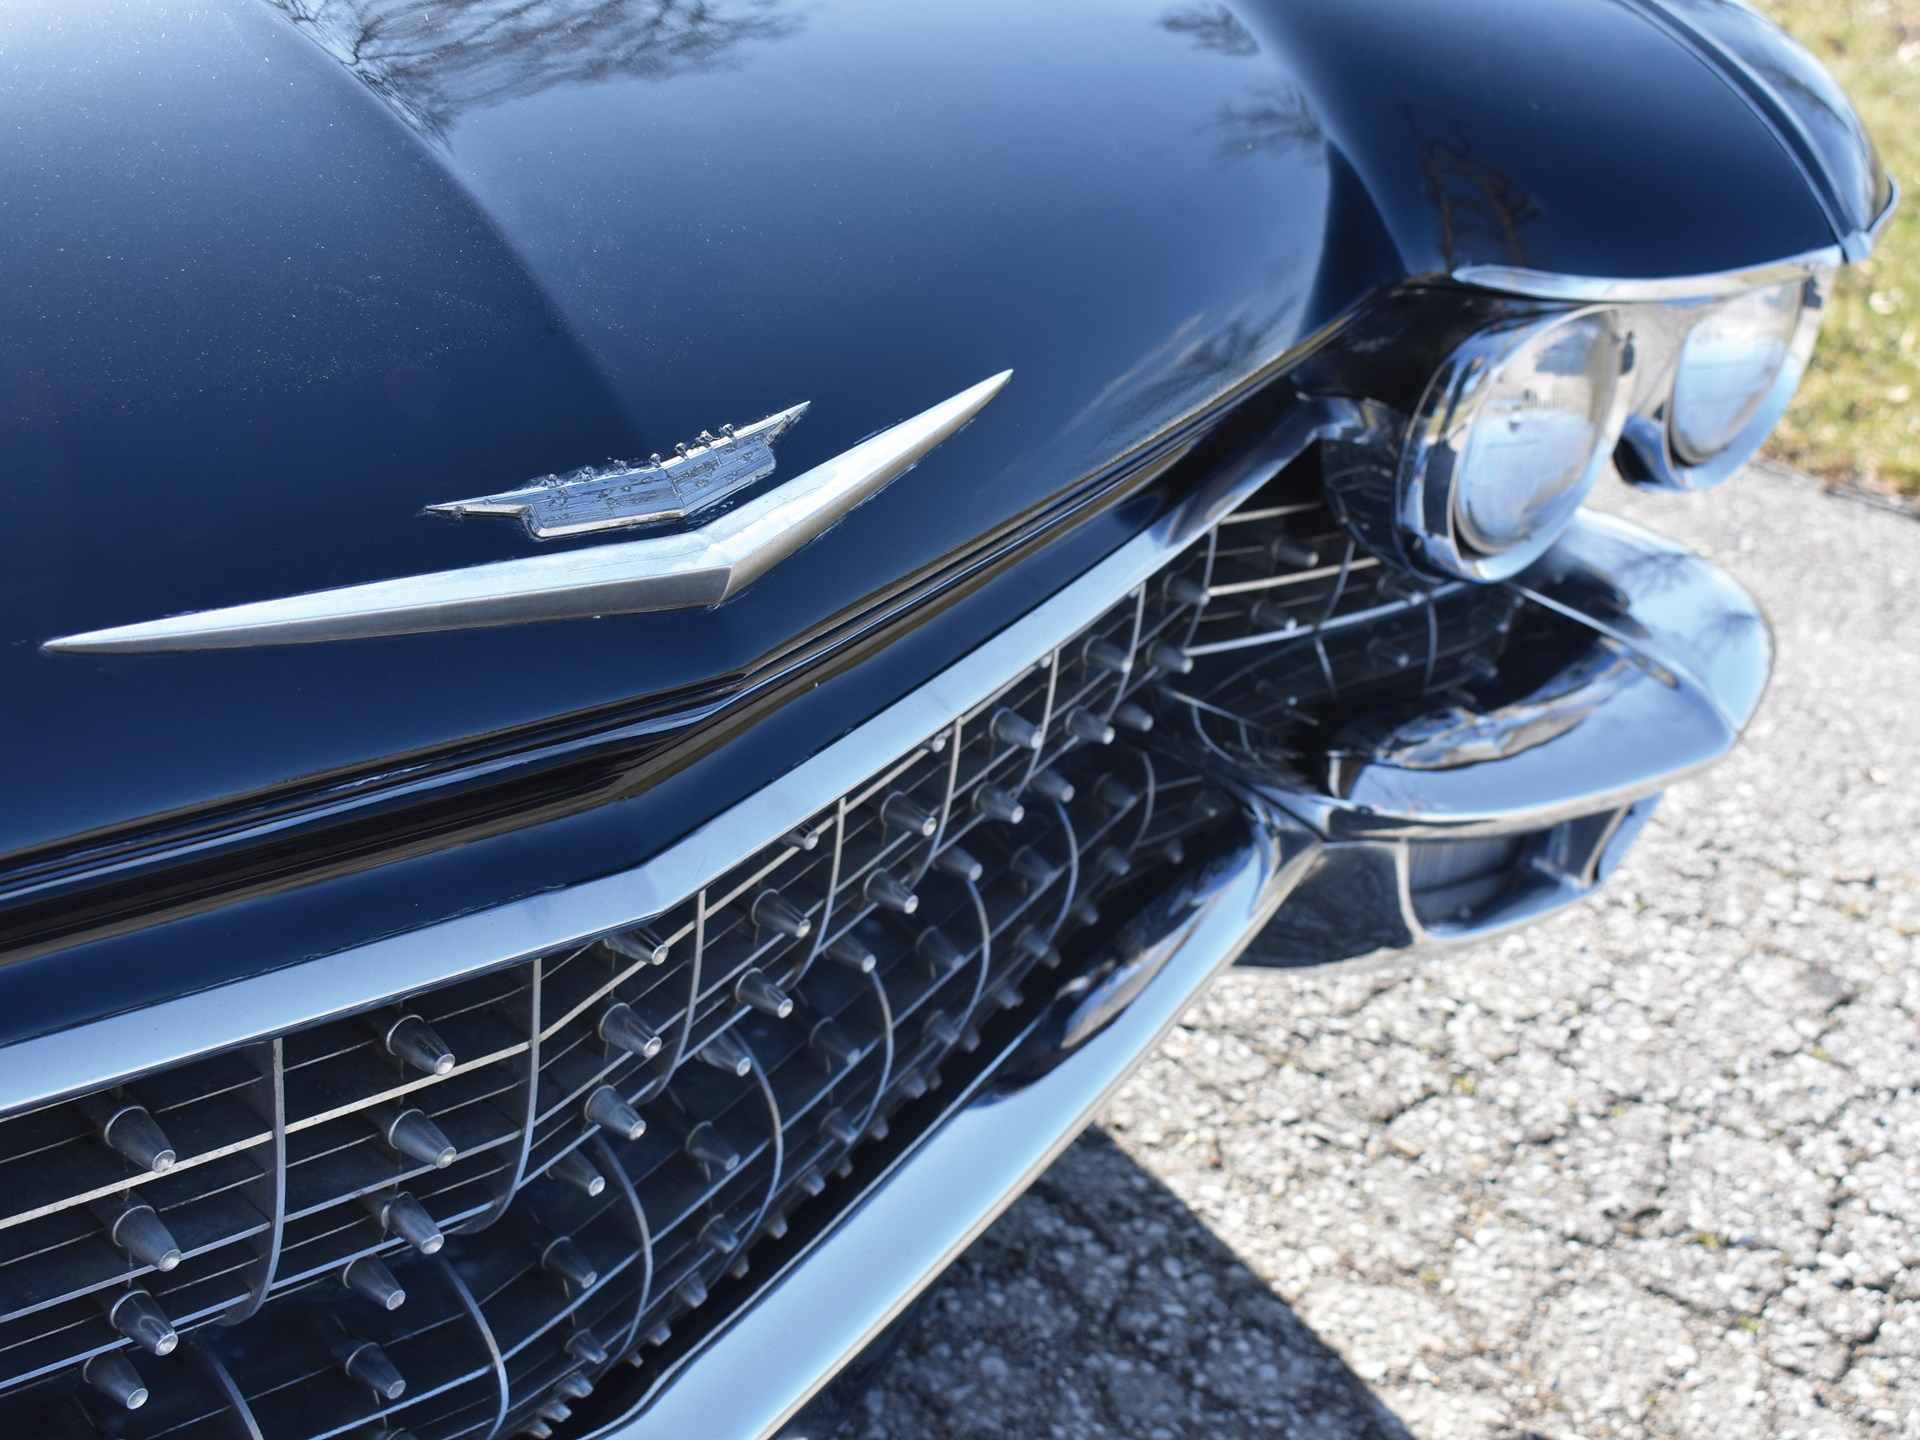 RM Sotheby's - 1960 Cadillac Fleetwood Sixty Special